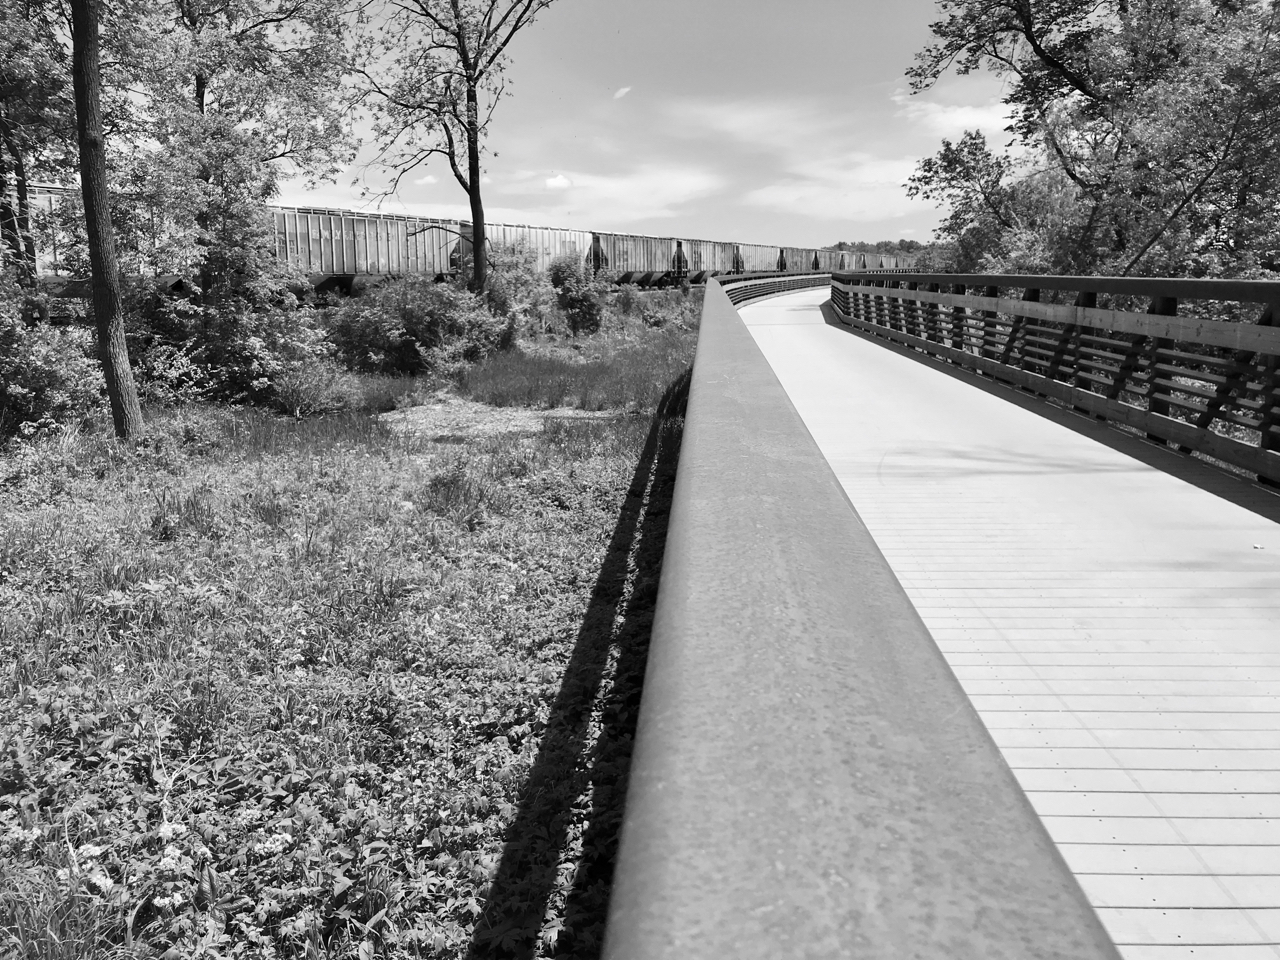 Rail. Lake Farm Park. Madison, Wisconsin. May 2018. © William D. Walker